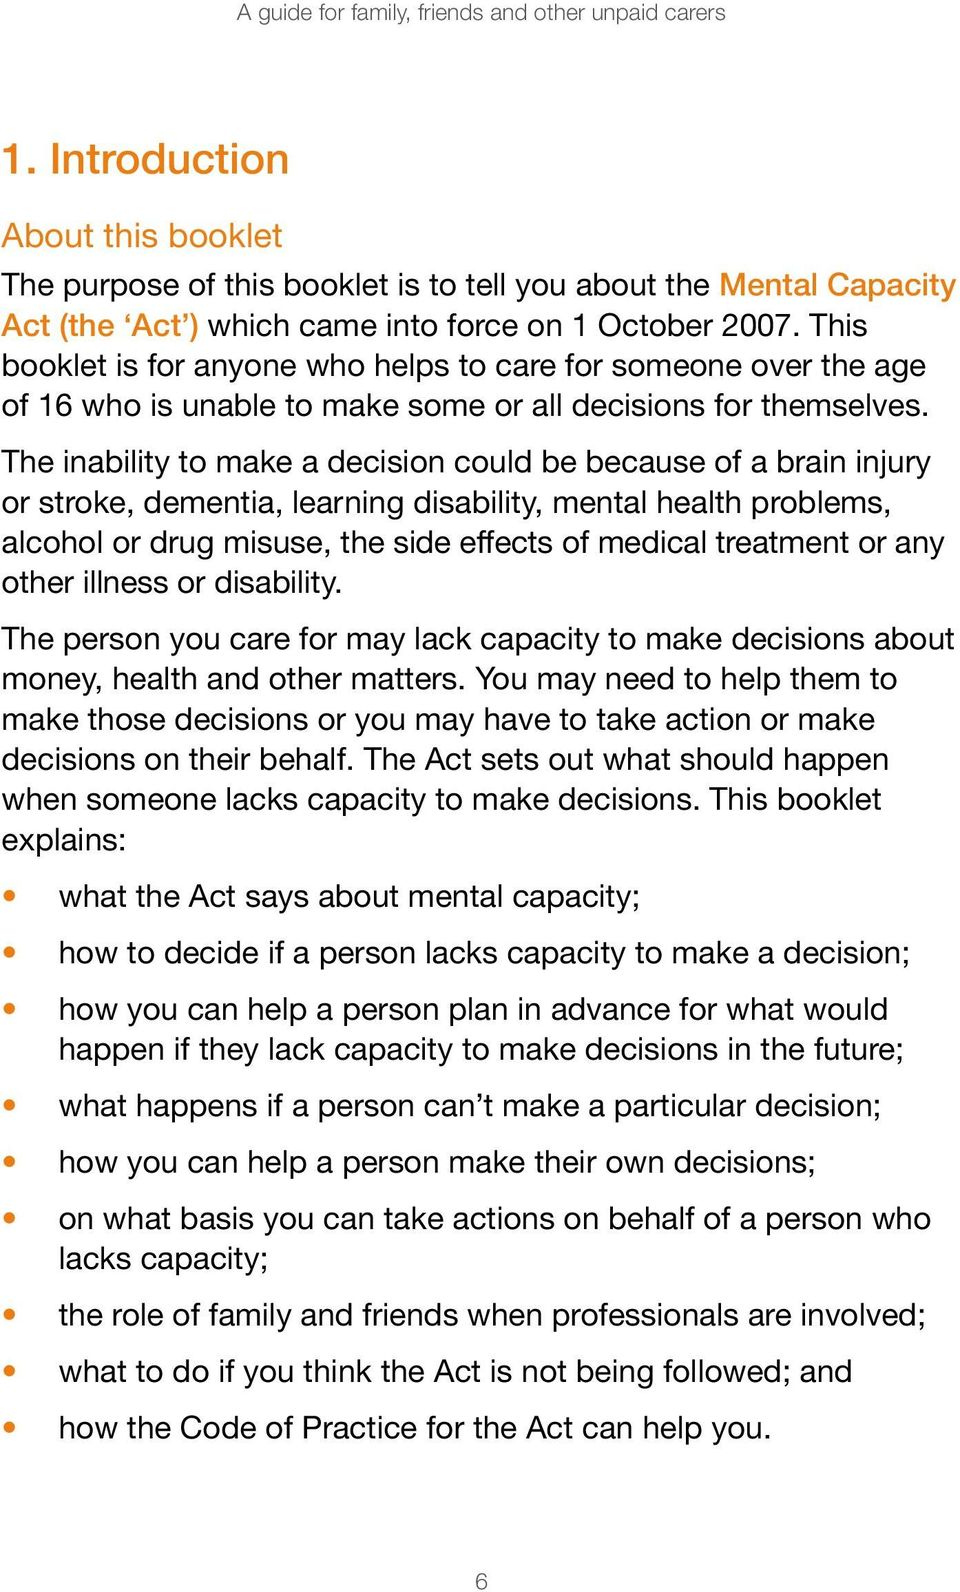 The inability to make a decision could be because of a brain injury or stroke, dementia, learning disability, mental health problems, alcohol or drug misuse, the side effects of medical treatment or